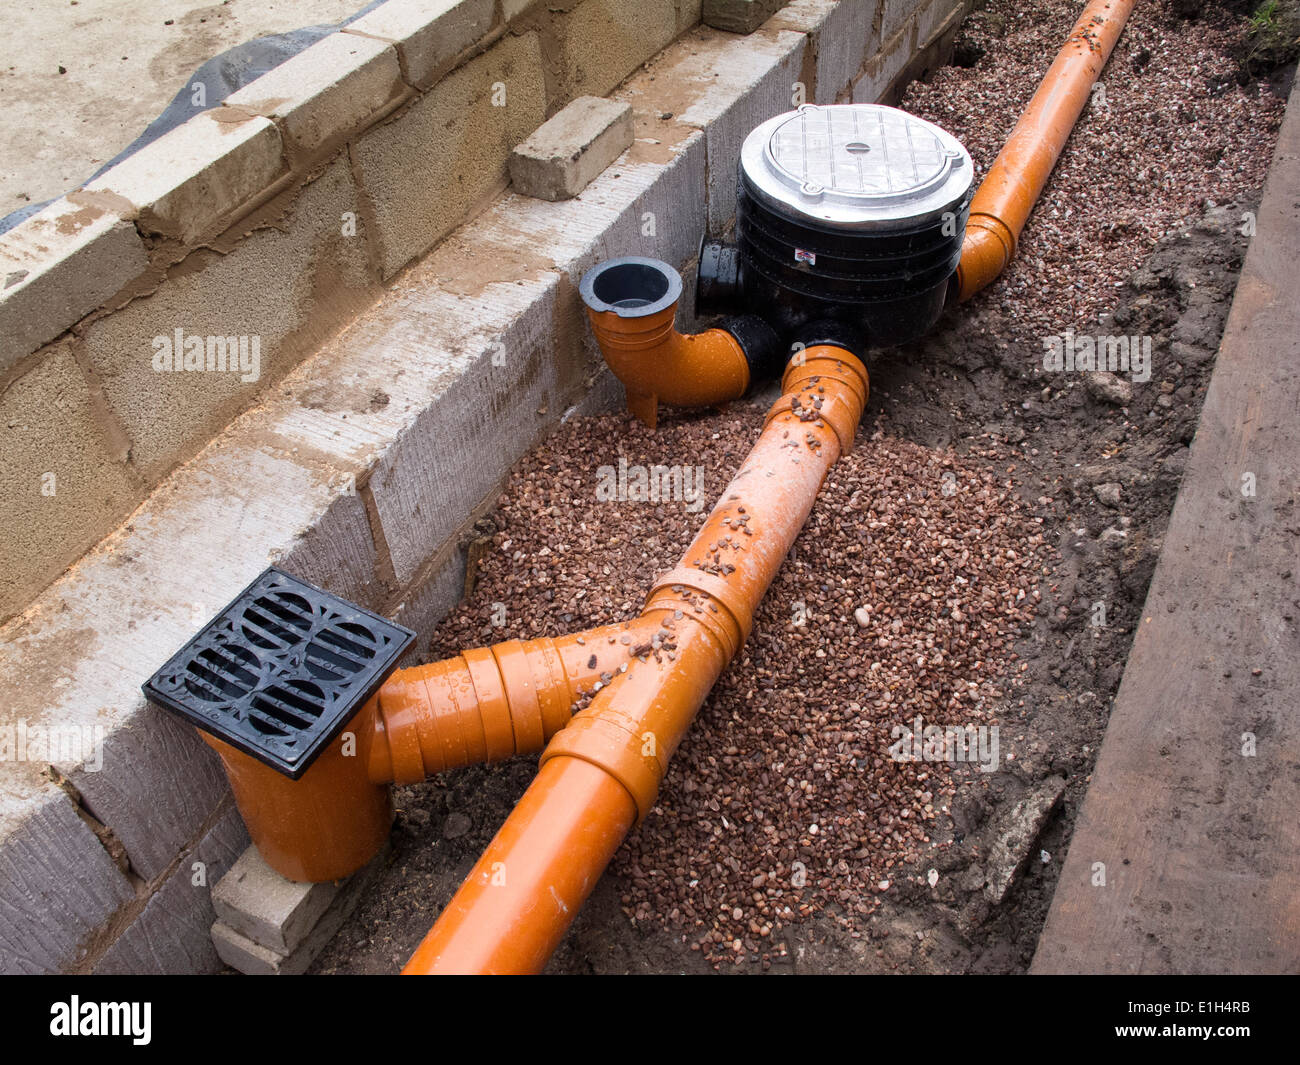 drain drains drainage stockfotos drain drains drainage bilder alamy. Black Bedroom Furniture Sets. Home Design Ideas